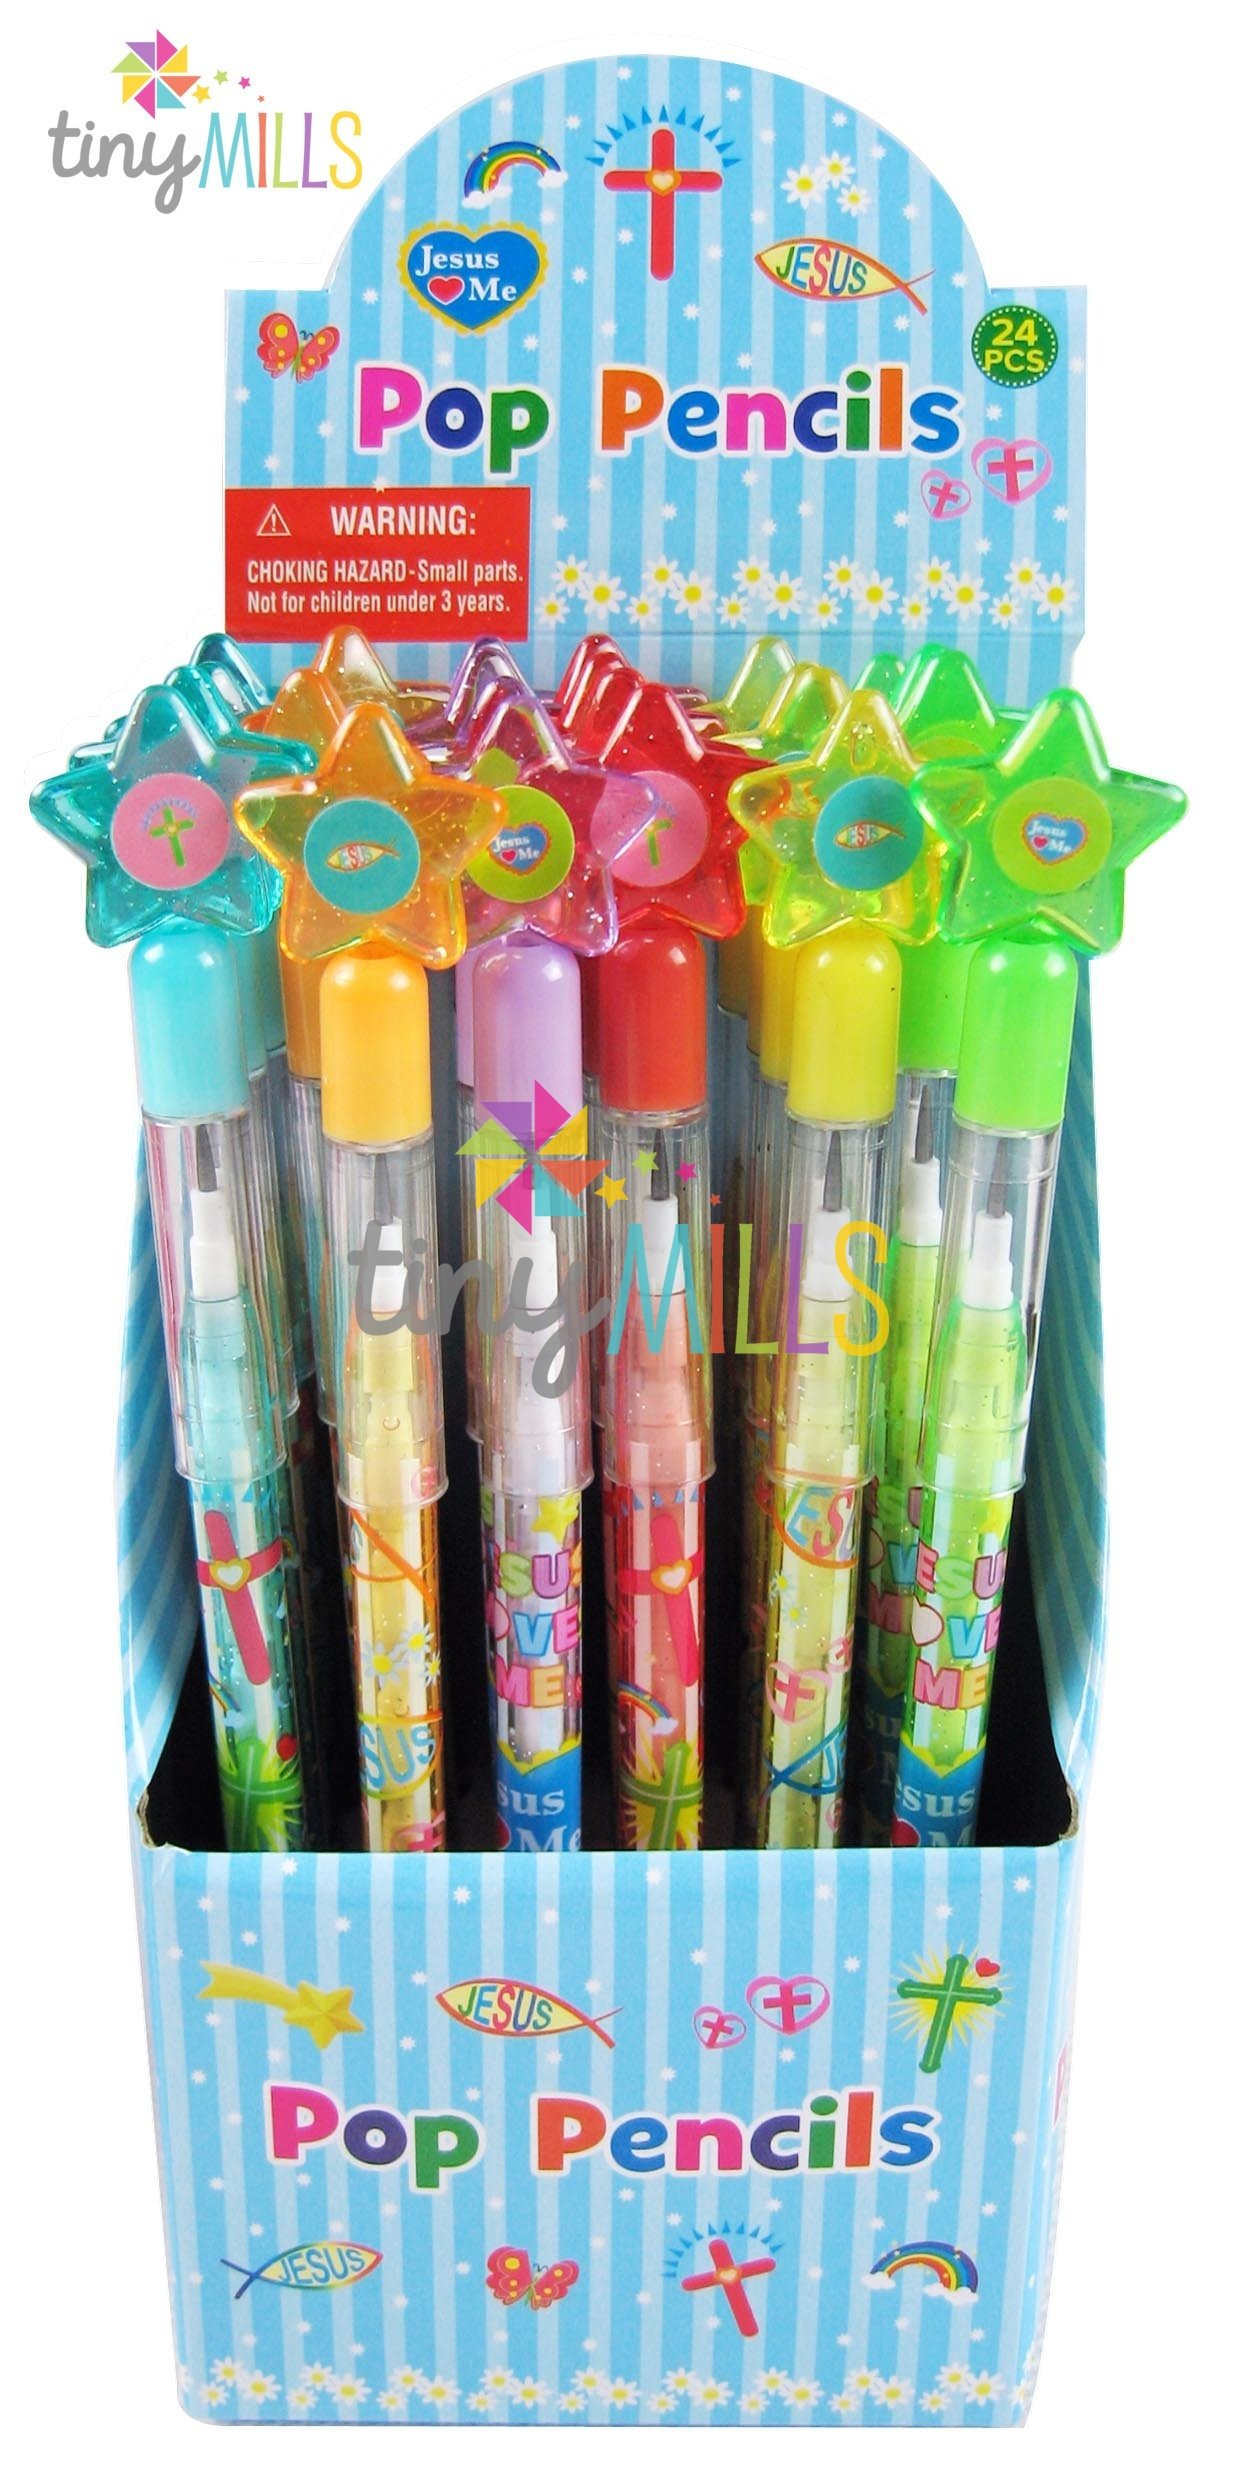 TINYMILLS 24 Pcs Religious Multi Point Pencils by TINYMILLS